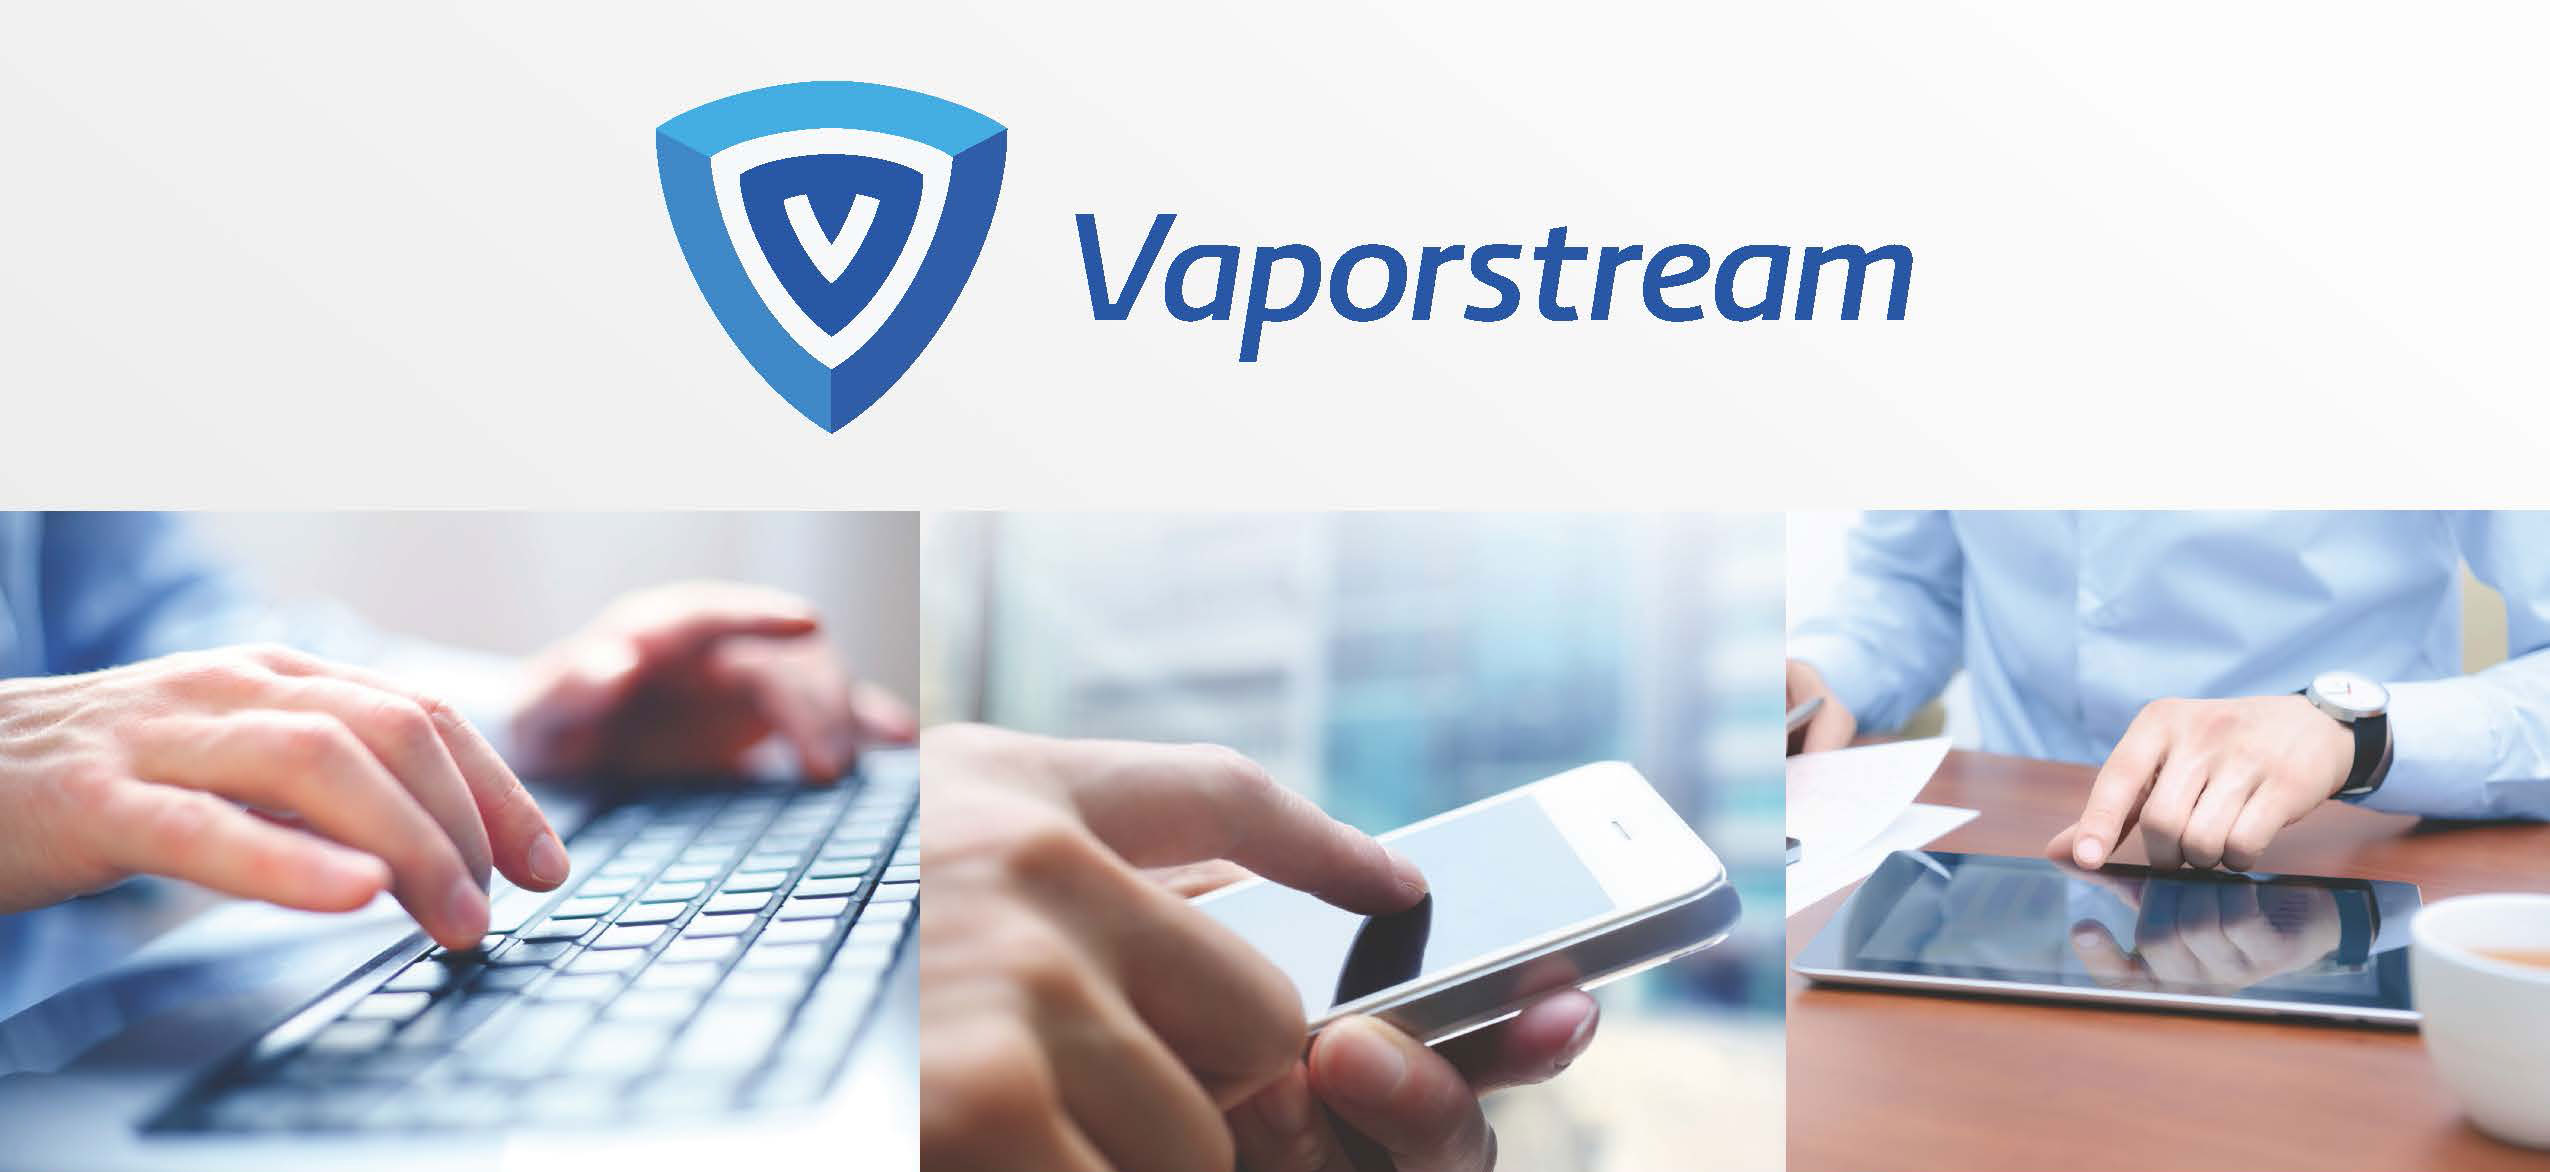 BPI Security is a retailer for Vaporstream Vispers